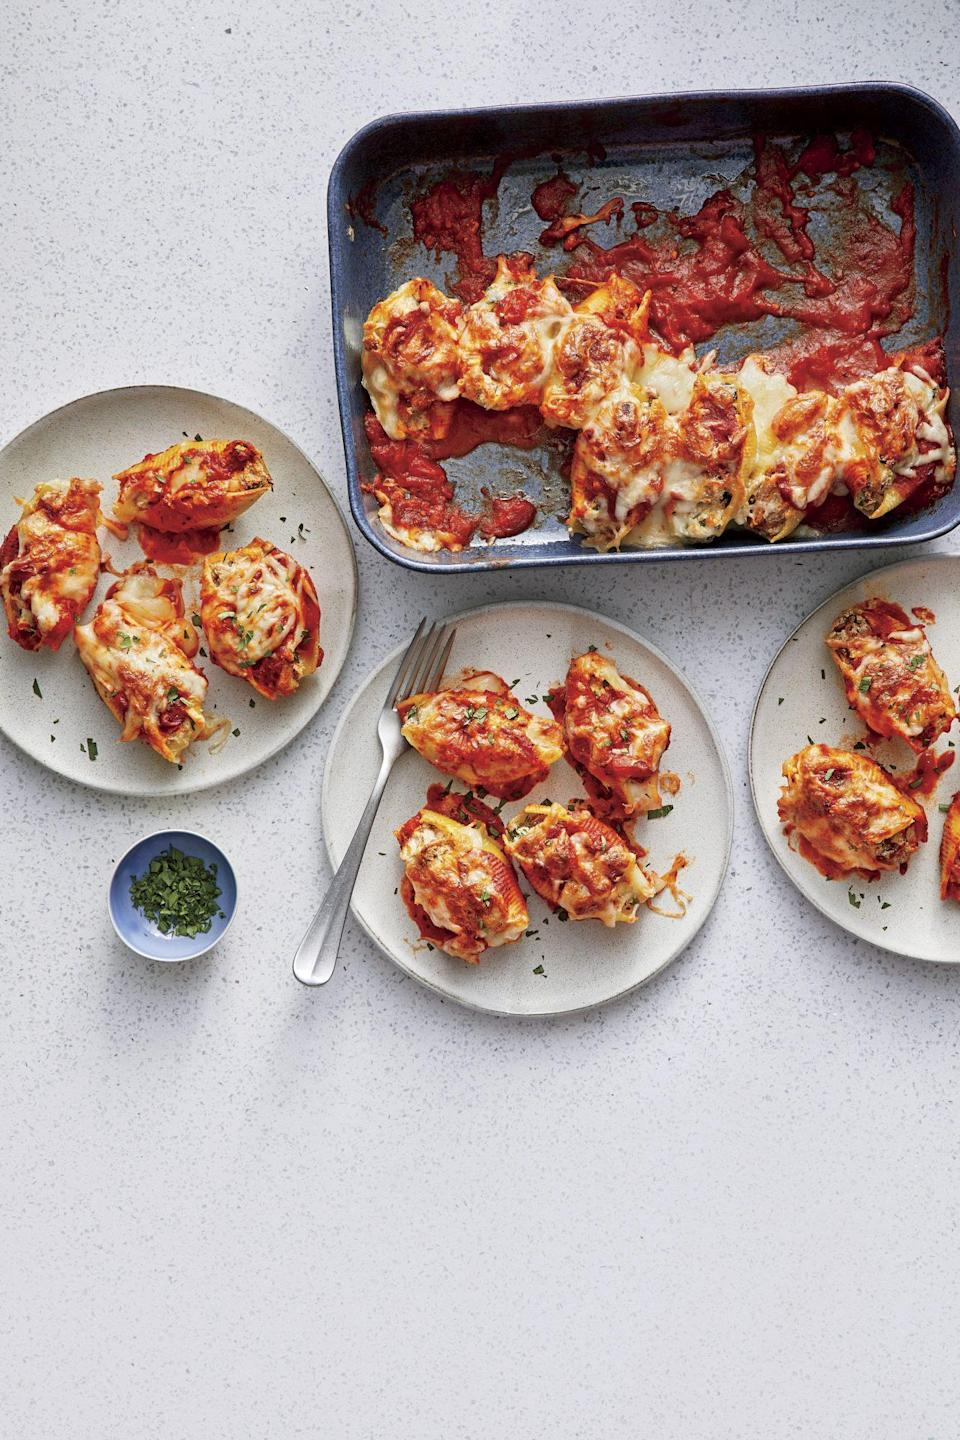 """<p><strong>Recipe: <a href=""""https://www.southernliving.com/recipes/smoked-pork-stuffed-shells"""" rel=""""nofollow noopener"""" target=""""_blank"""" data-ylk=""""slk:Smoked Pork-Stuffed Pasta Shells"""" class=""""link rapid-noclick-resp"""">Smoked Pork-Stuffed Pasta Shells</a></strong></p> <p>Instead of hand-making meatballs for pasta night, drop by your favorite BBQ joint on the way home and pick up some pulled pork to make this hearty supper. Our Test Kitchen has a great tip for freezing this pasta bake without sacrificing a dish: Line the dish with heavy-duty aluminum foil, allowing several inches of foil to extend over sides. Prepare recipe as directed and freeze until firm. Holding the edges of foil, lift the casserole up from the dish, then fold the foil over the top. Wrap tightly in two layers of plastic wrap and re-pop back in the freezer. Before baking, remove plastic wrap, unwrap the top of the frozen casserole and place it back into the baking dish.</p>"""